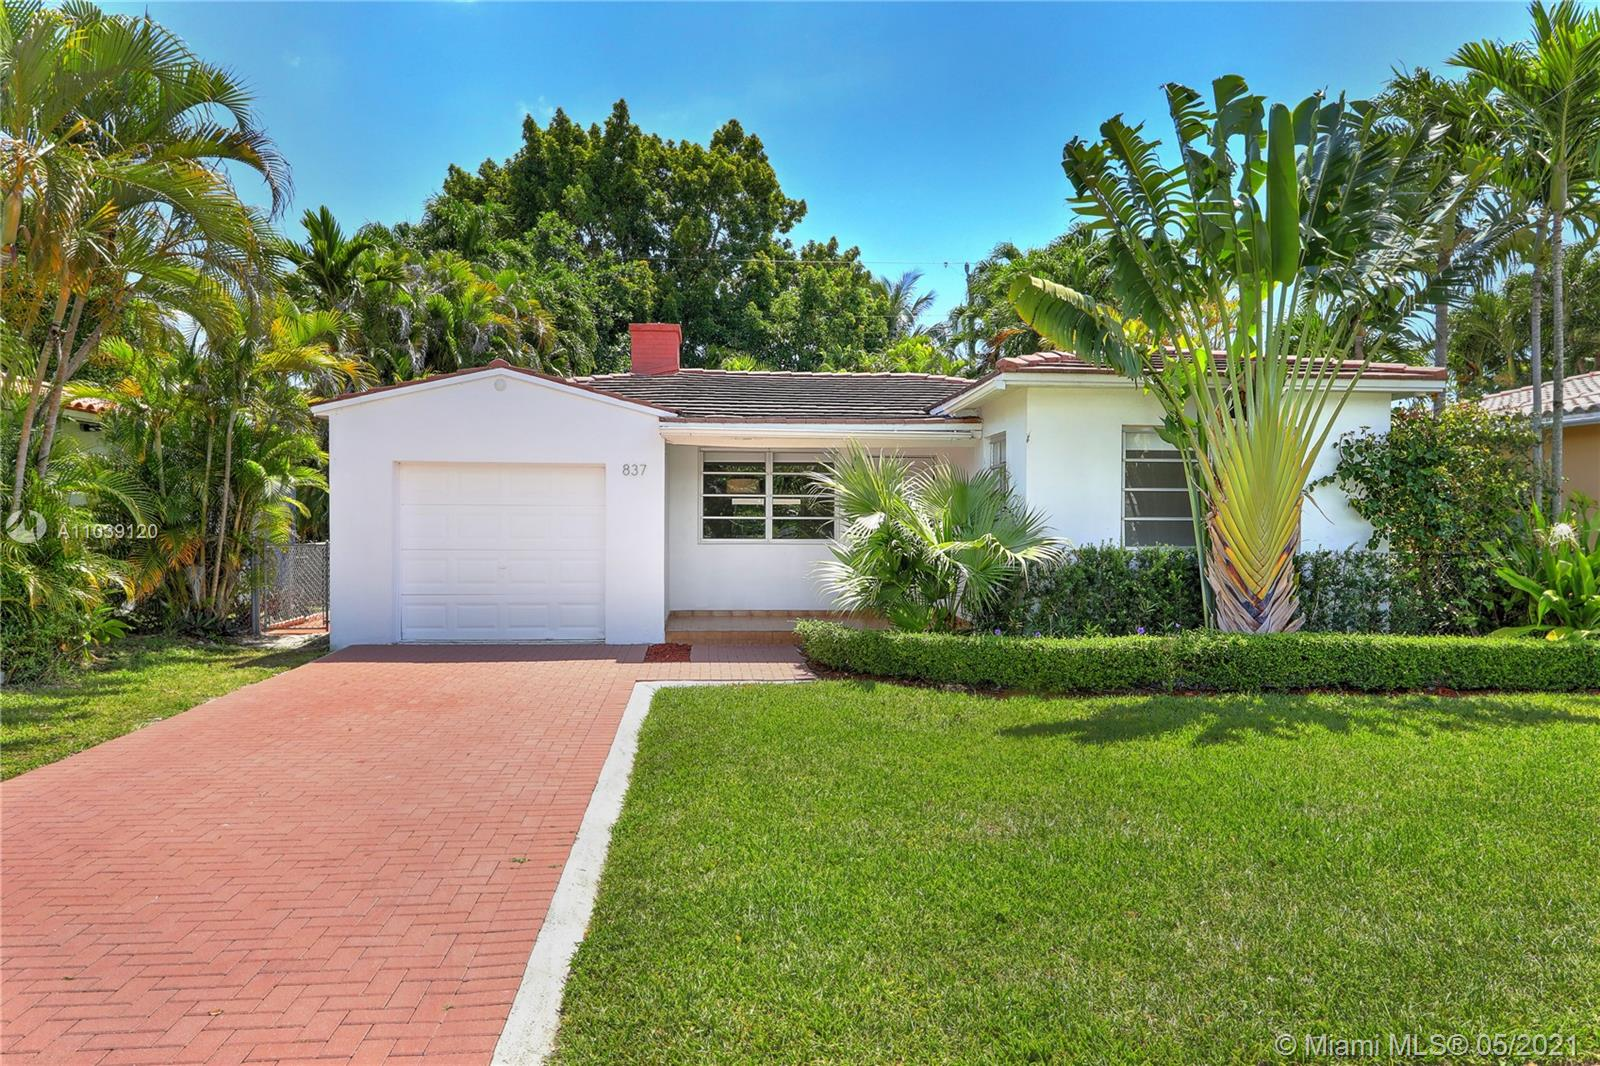 Tamiami Place - 837 Tangier St, Coral Gables, FL 33134